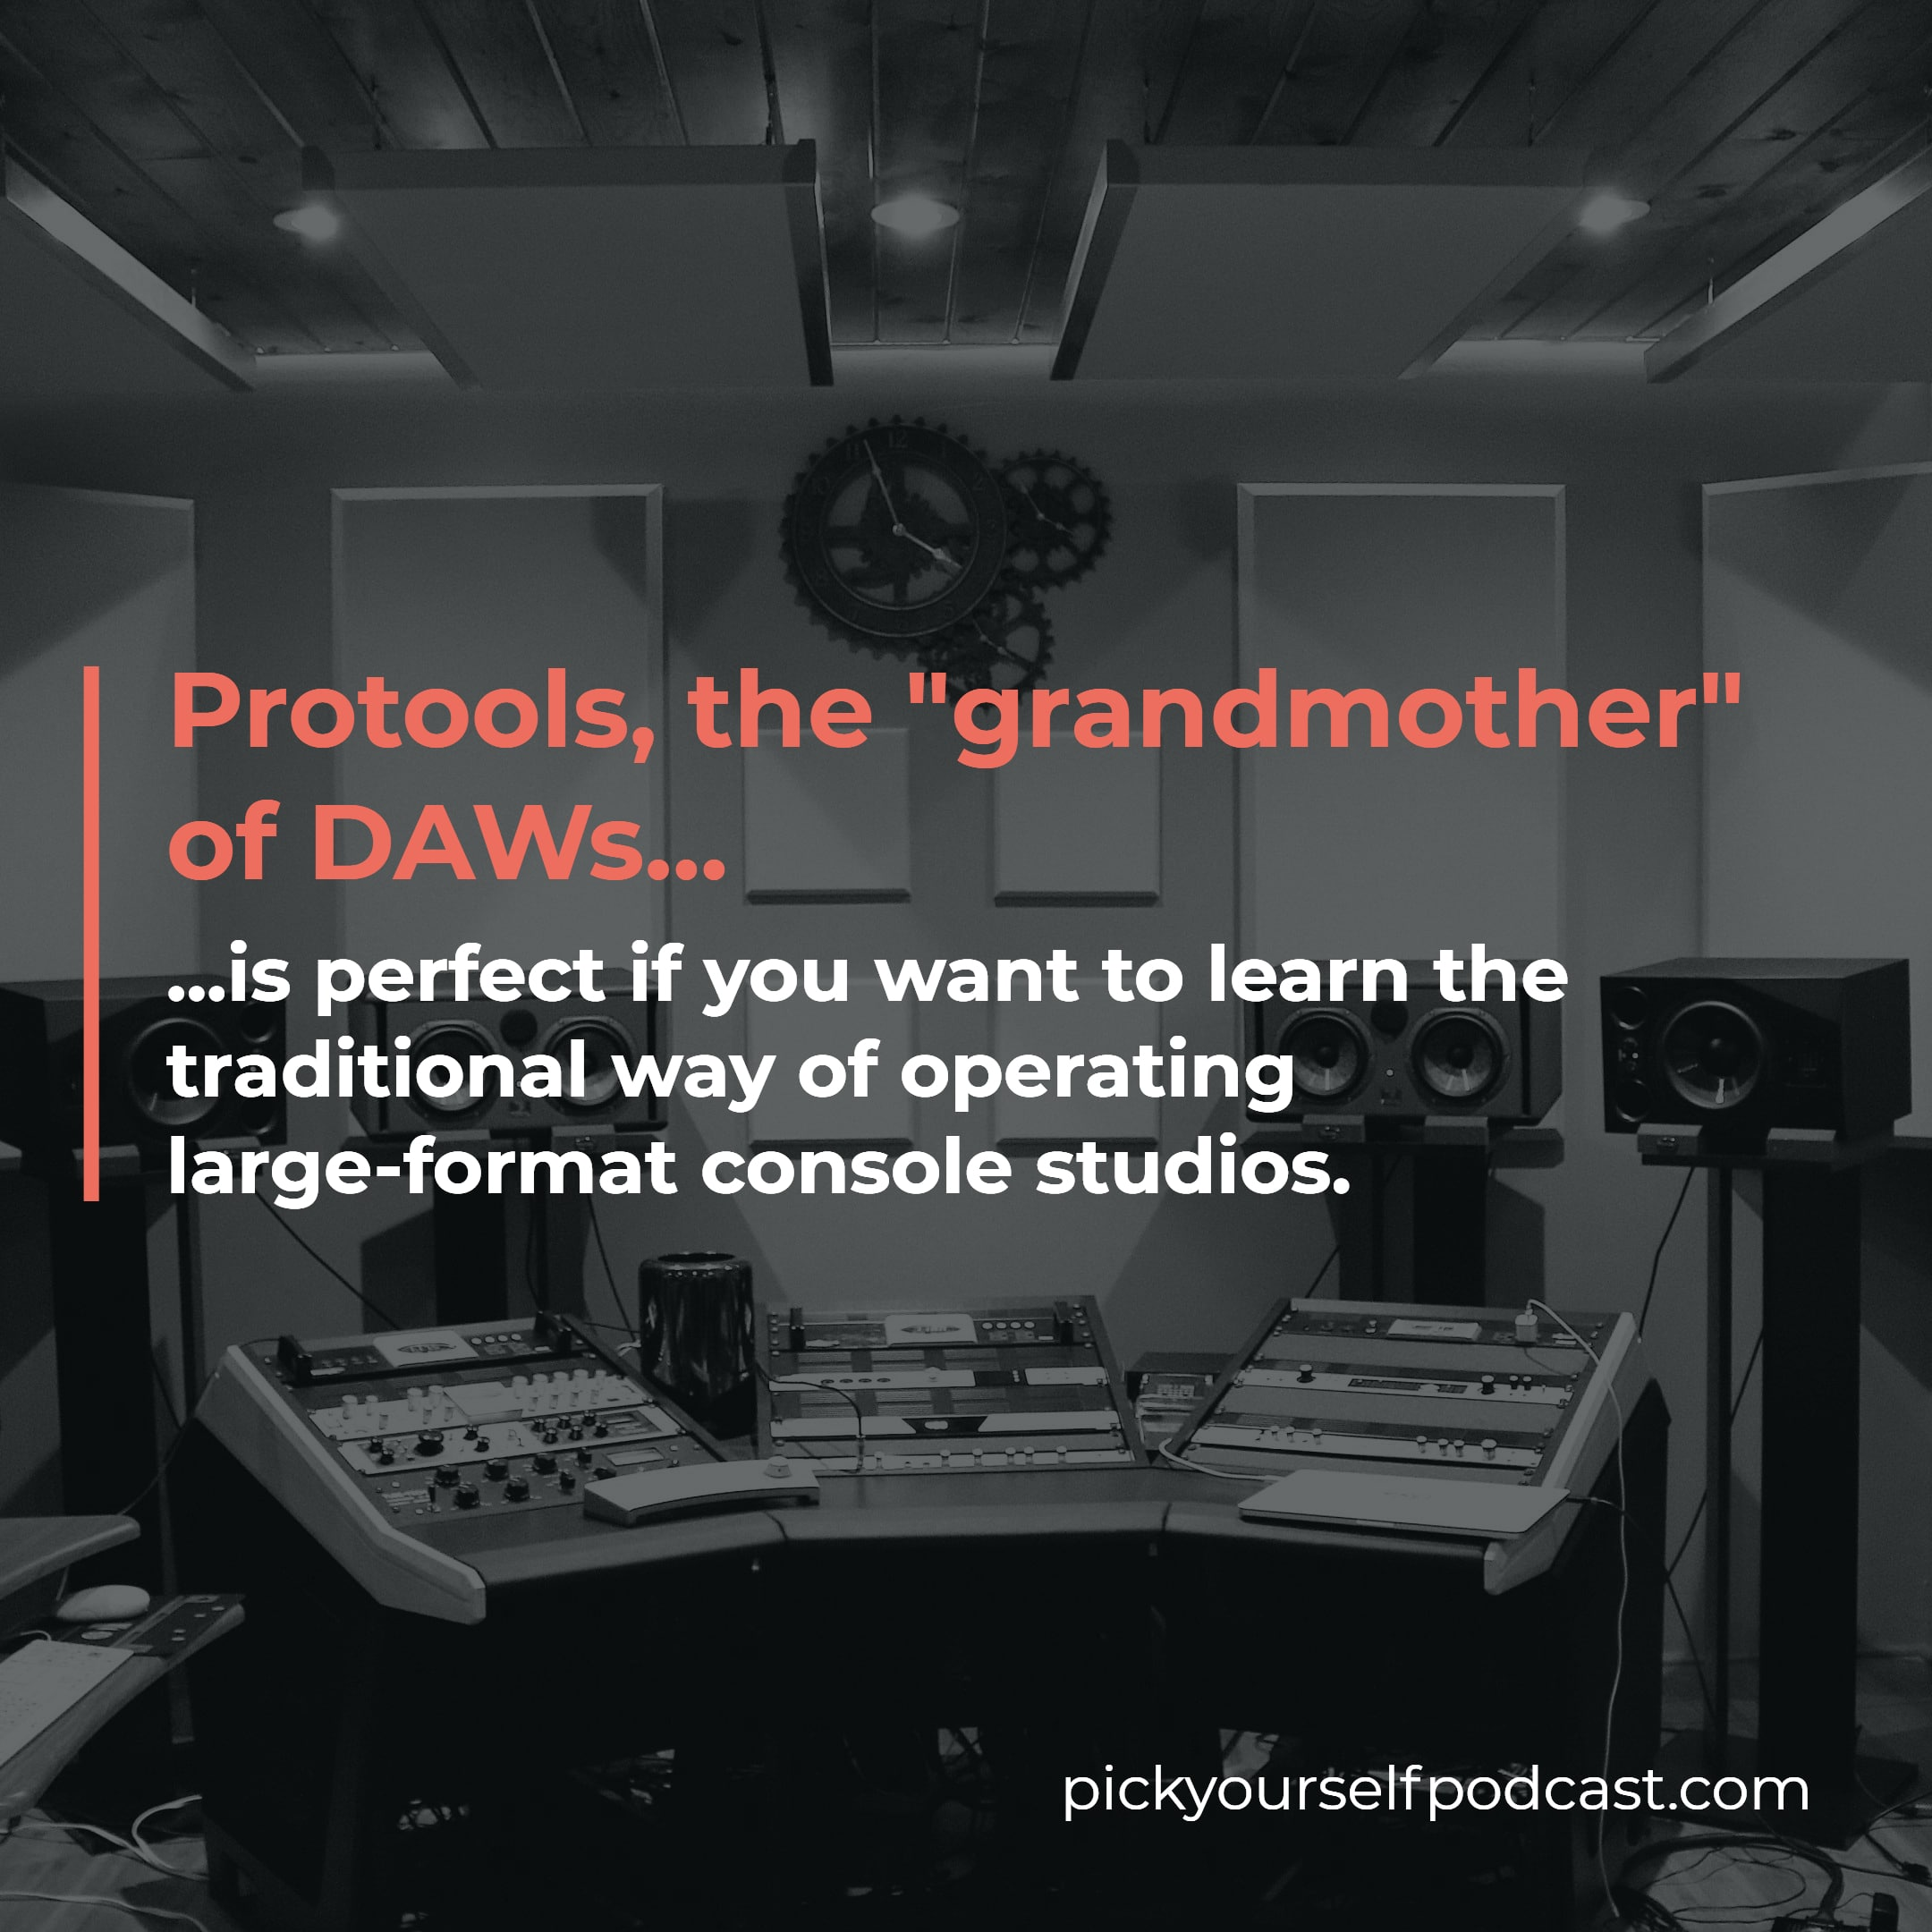 ProTools is perfect if you want to learn the traditional way of operating large-format console studios.